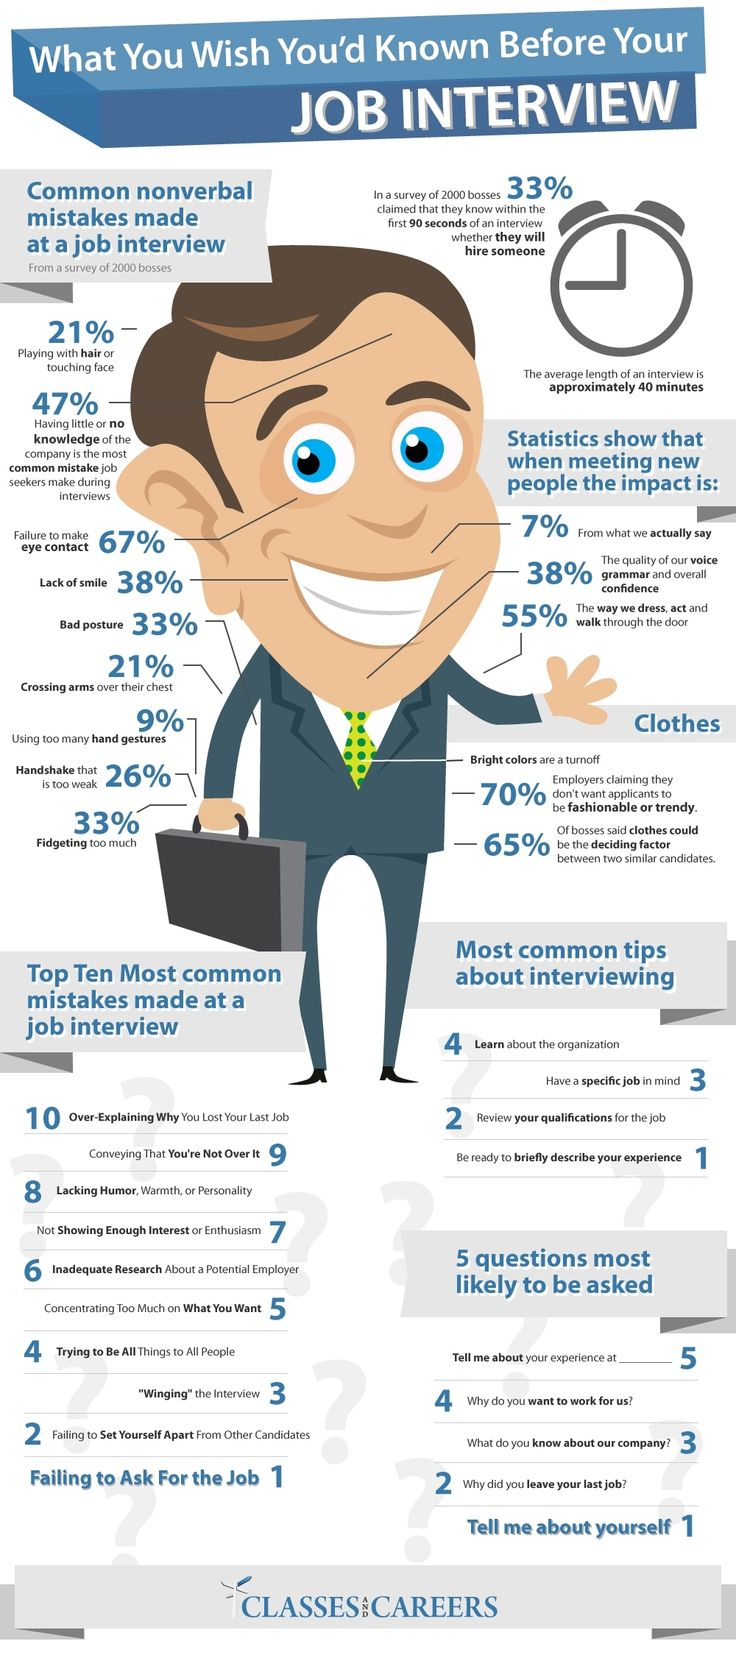 What You Wish You'd Known Before Your Job Interview   Your Future, Your World Blog #yourfutureyourworld